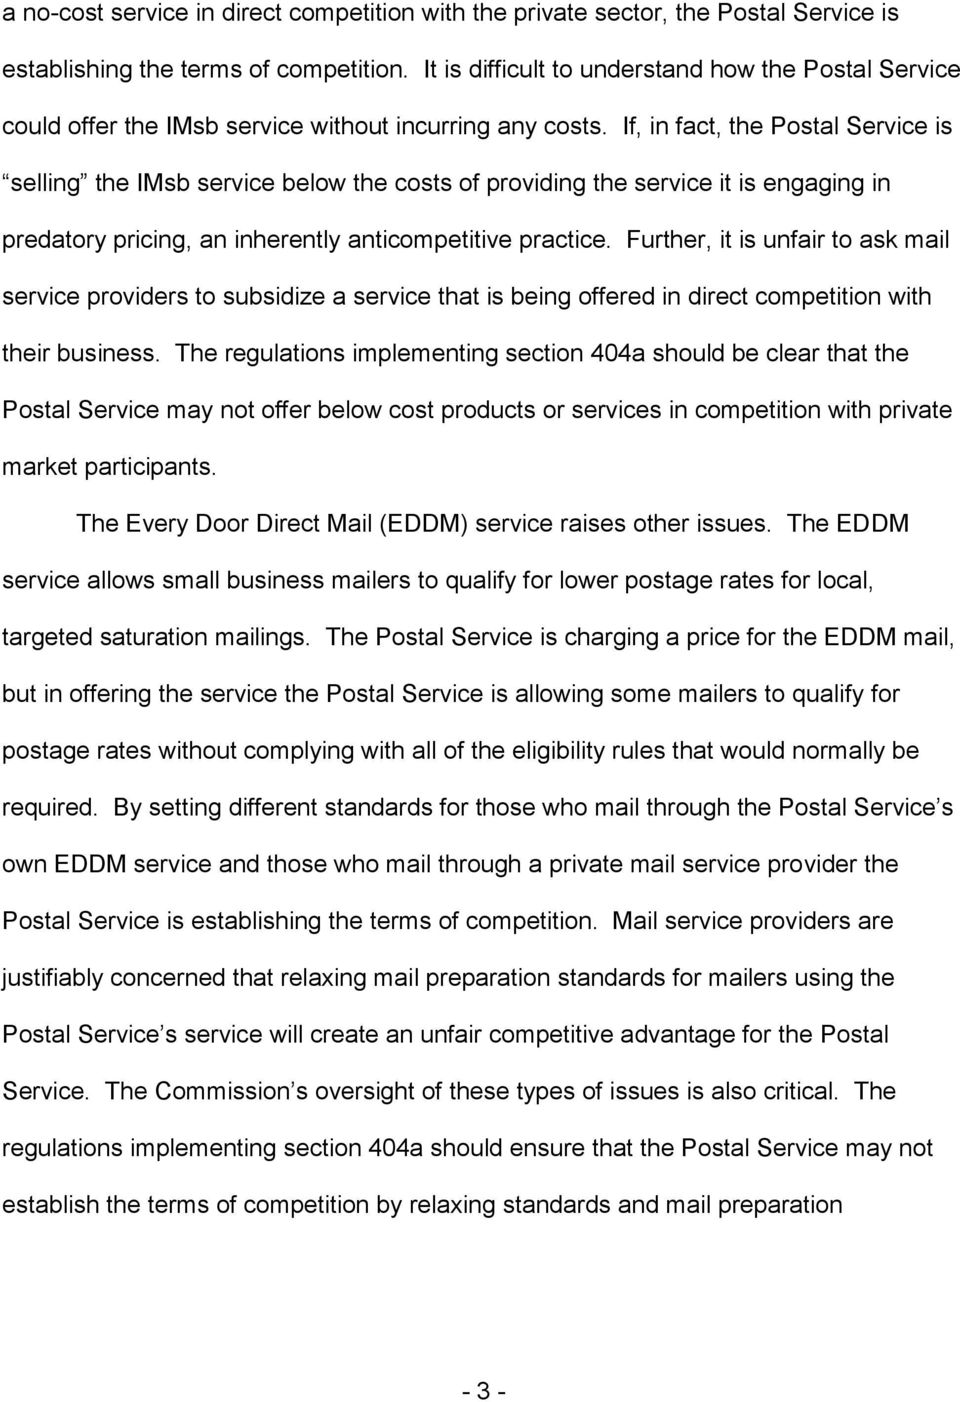 If, in fact, the Postal Service is selling the IMsb service below the costs of providing the service it is engaging in predatory pricing, an inherently anticompetitive practice.